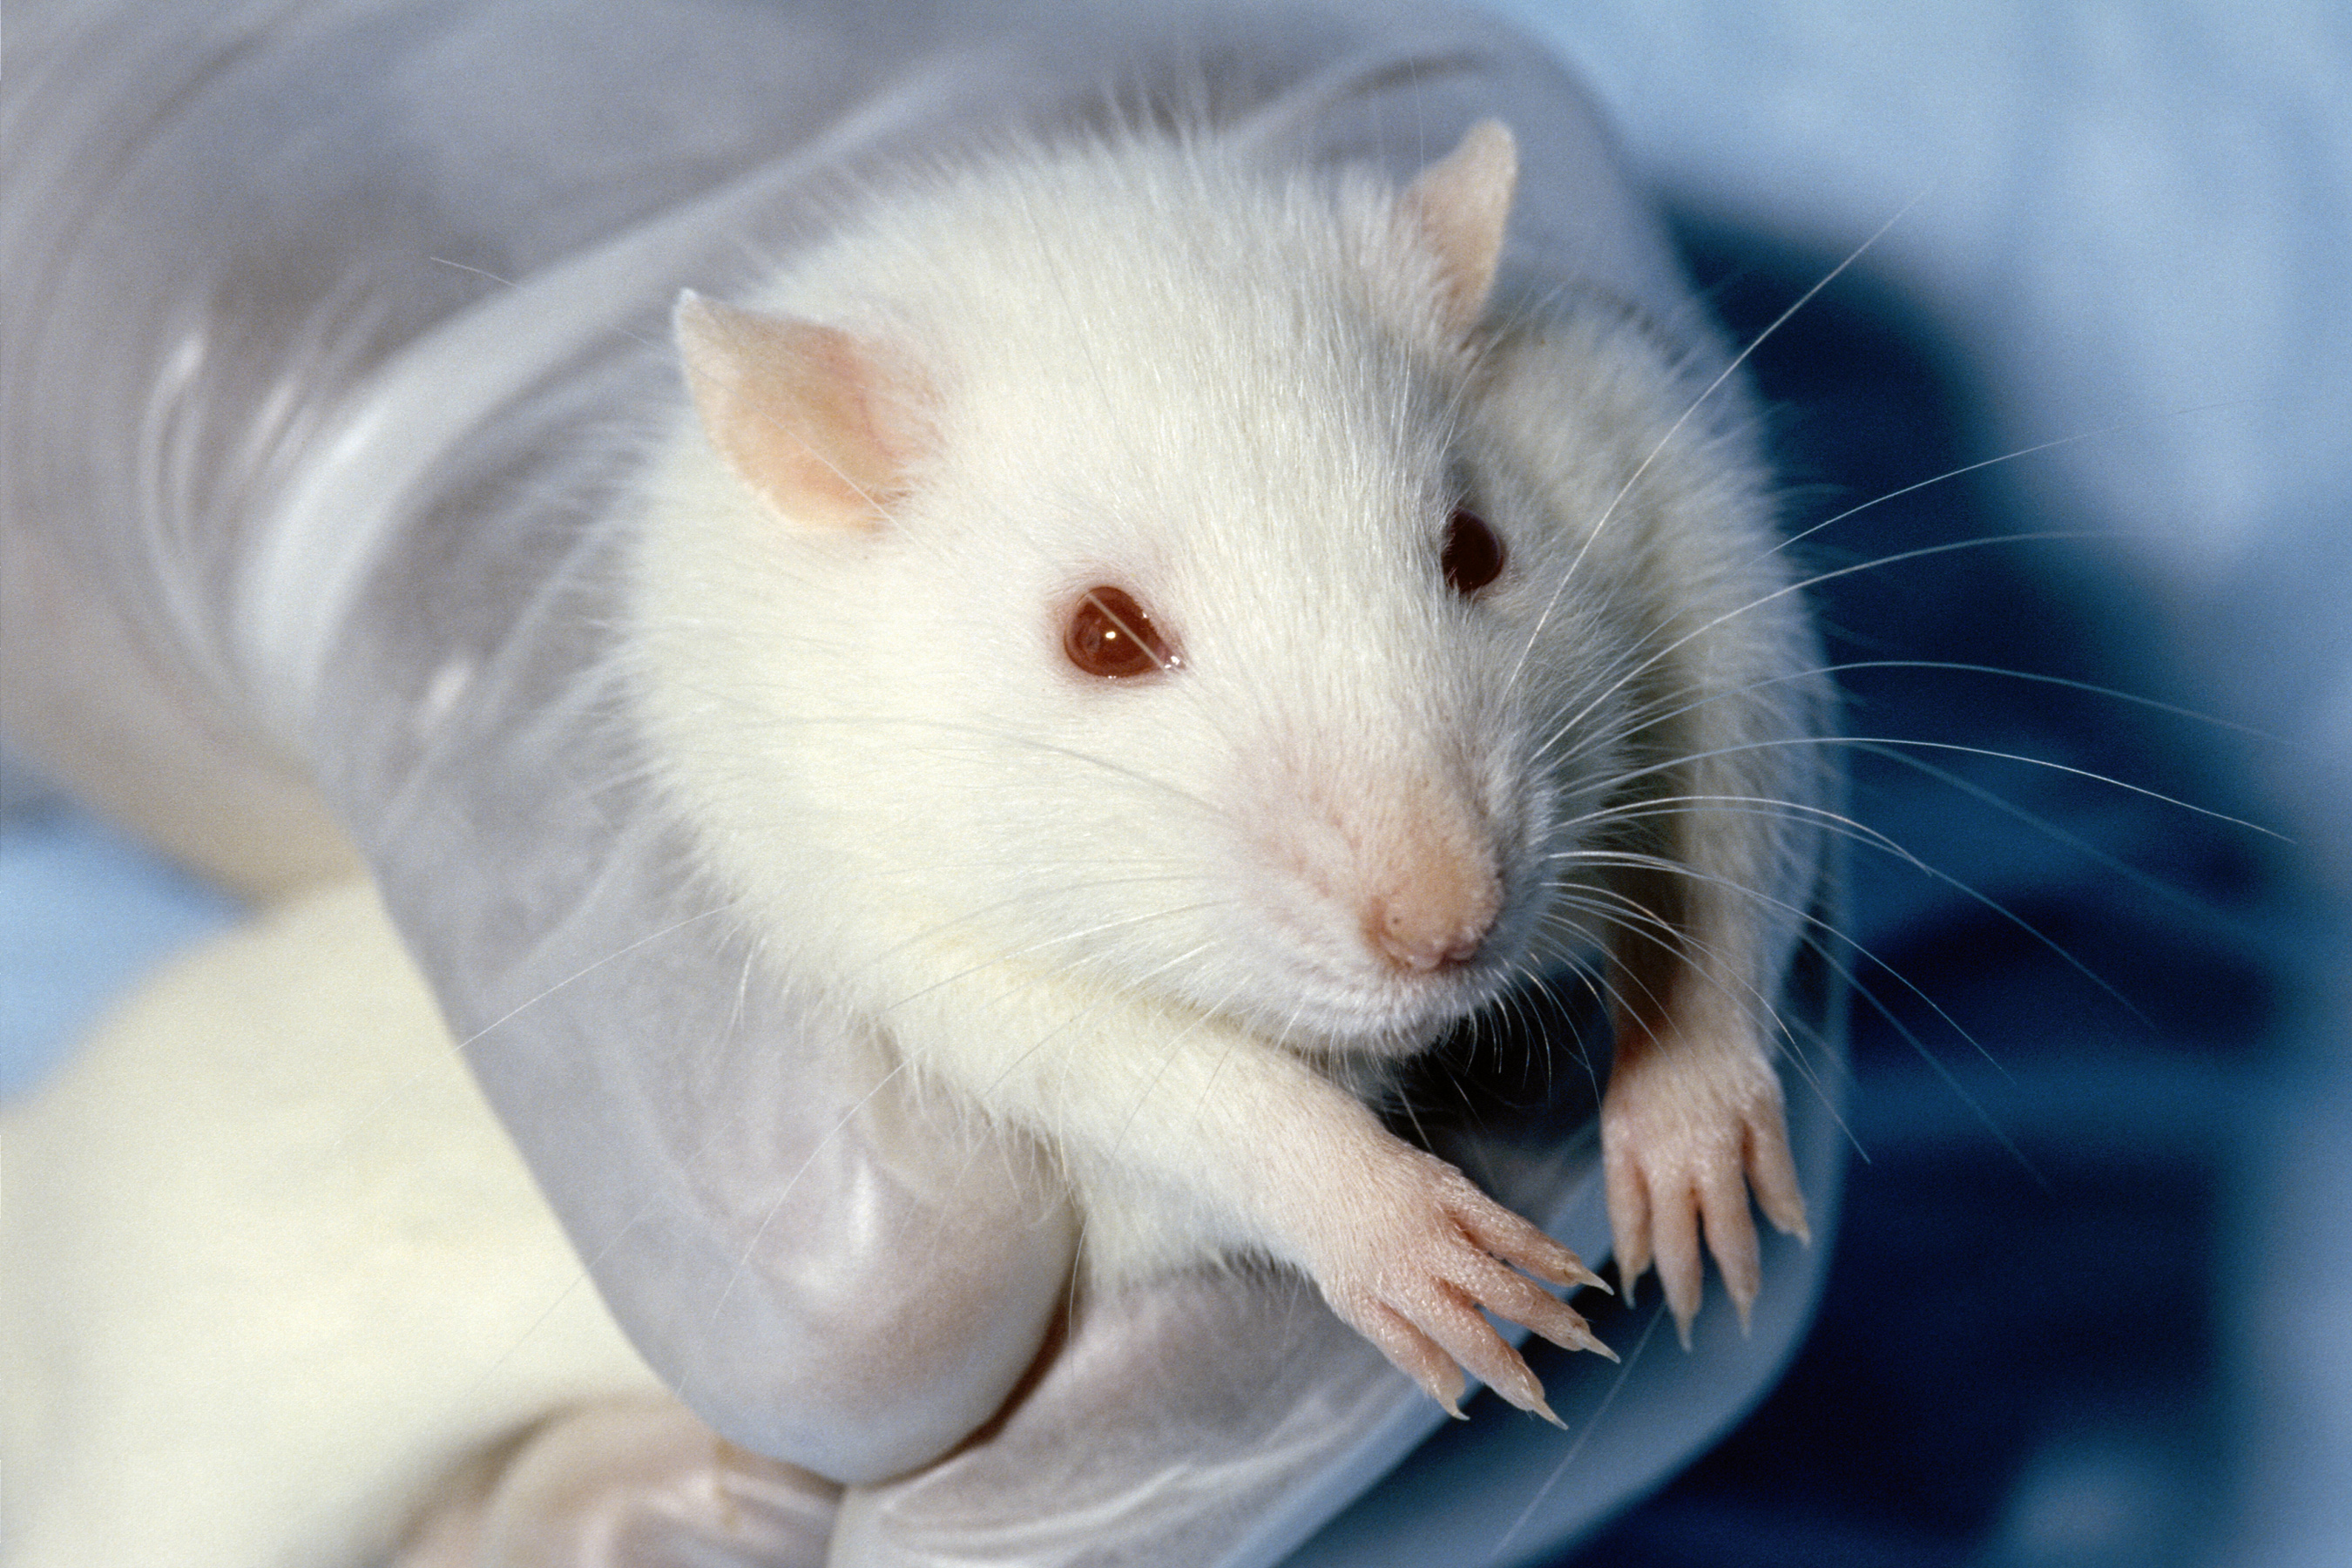 Should animal be used for medical research